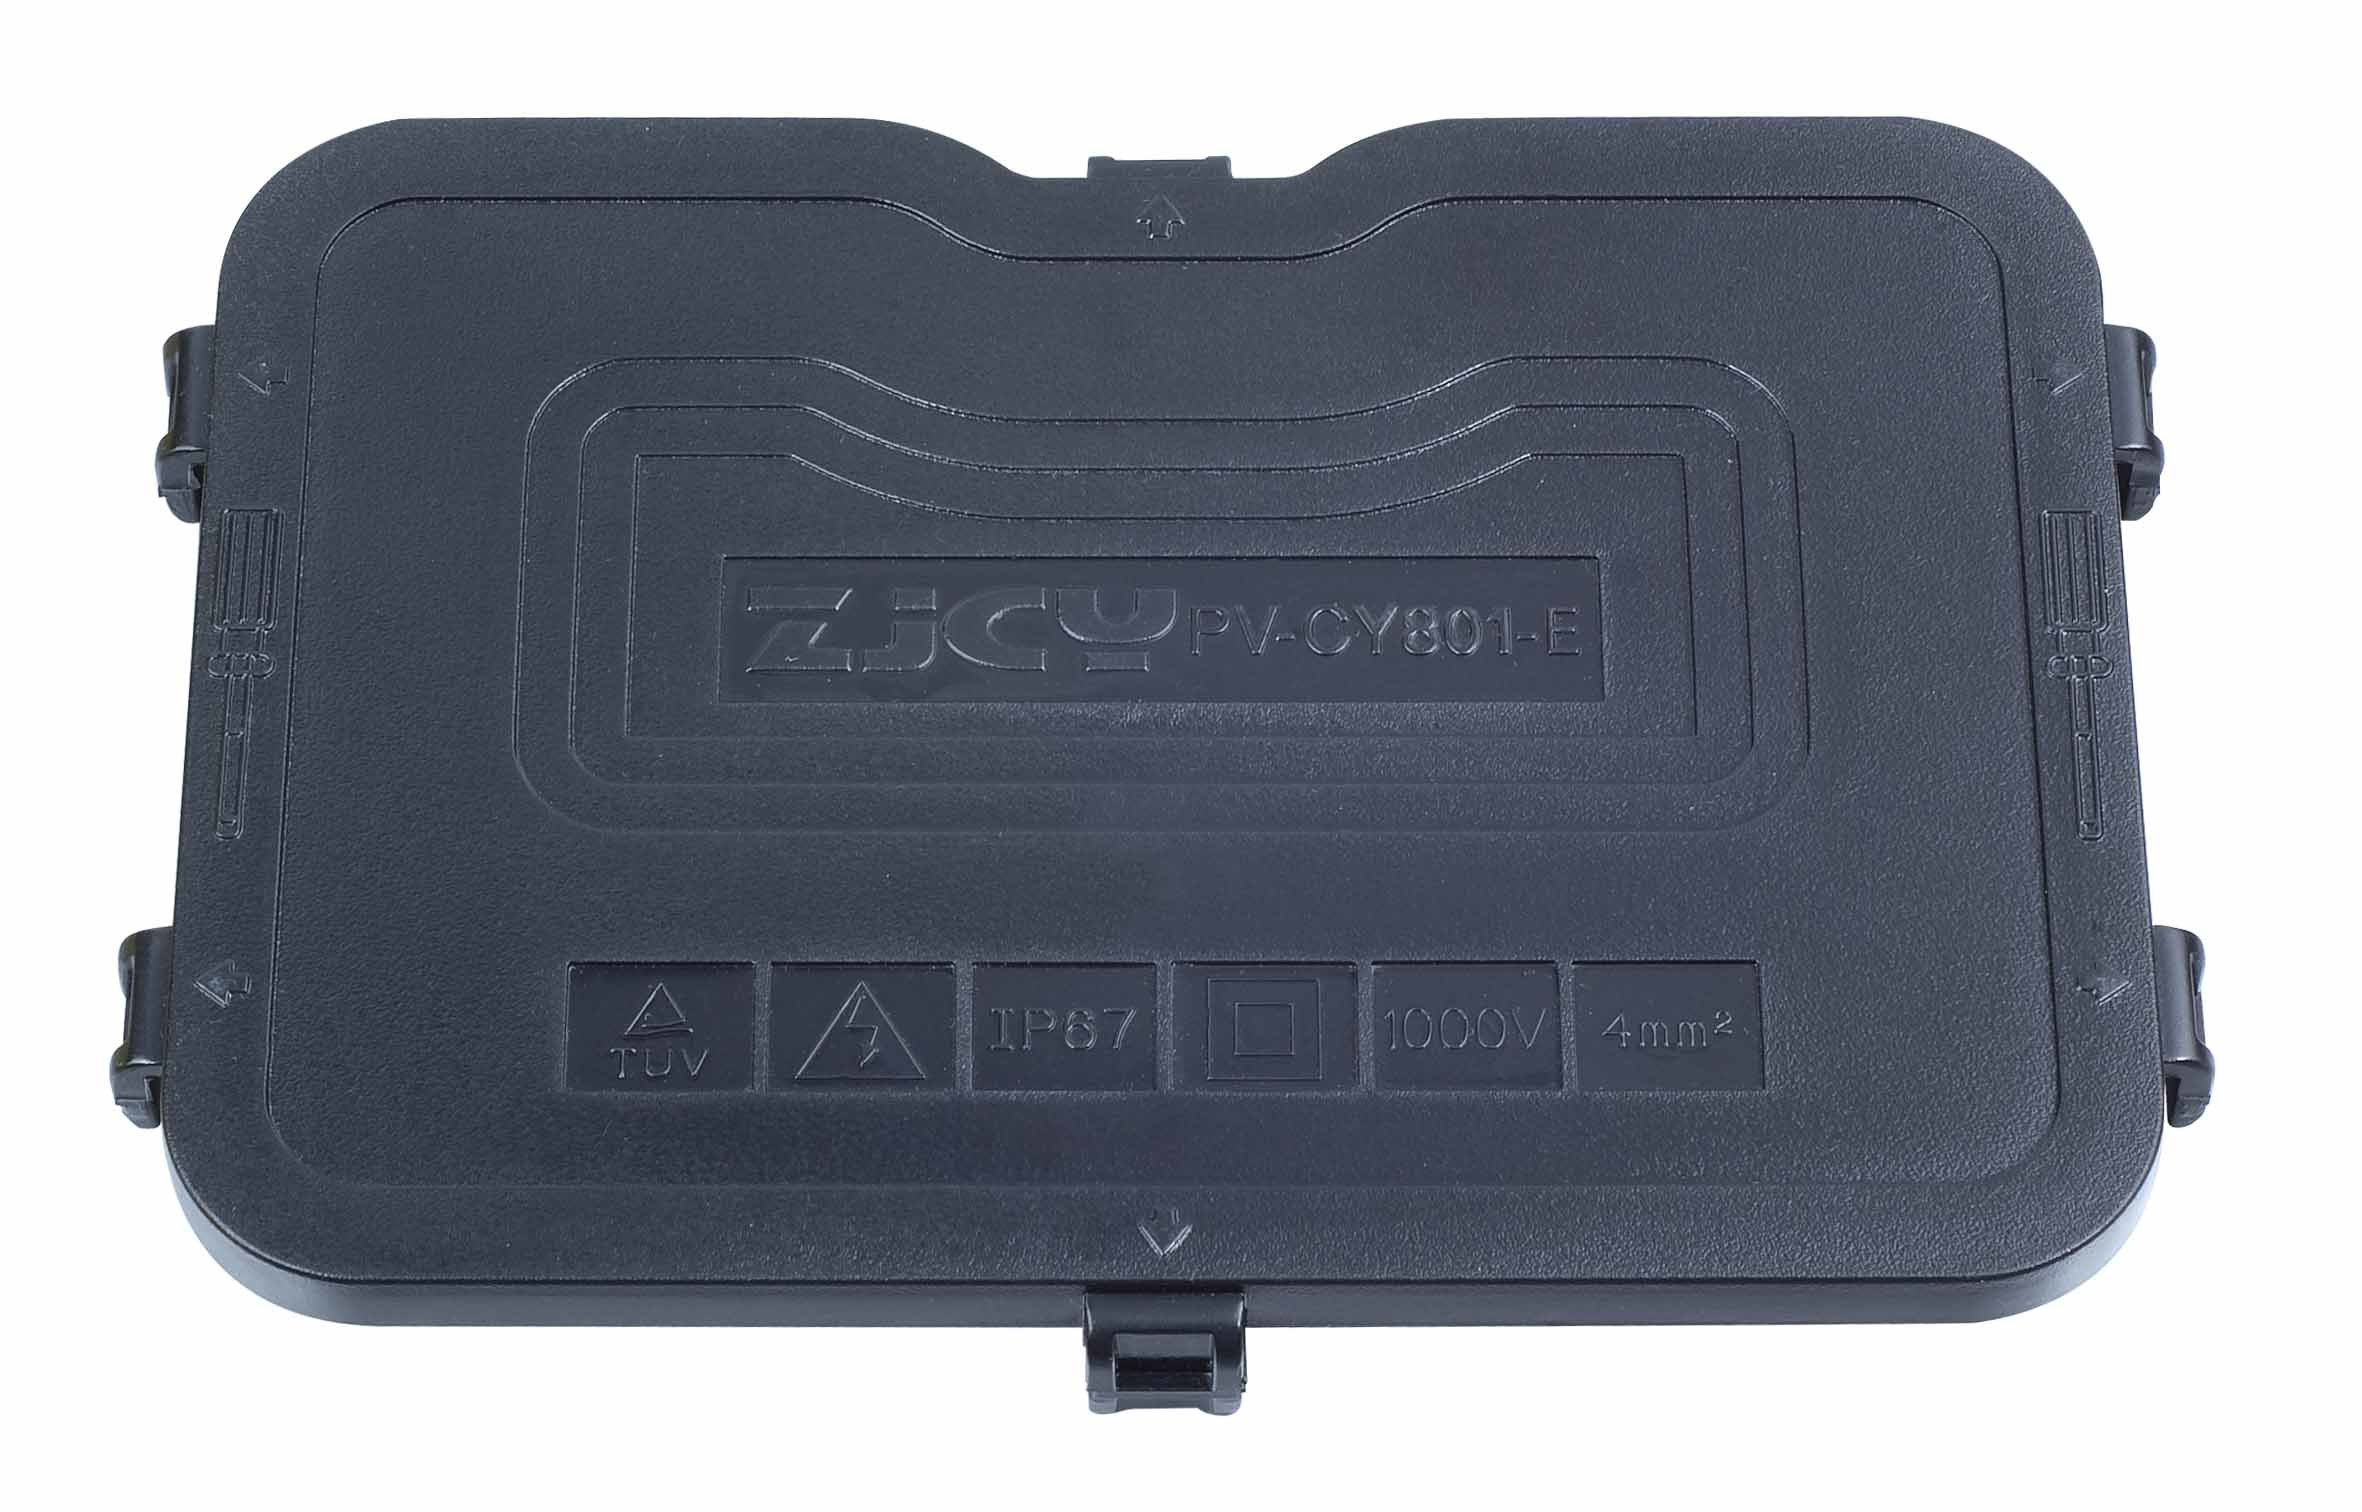 PV-Cy801-E Smart Solar PV Junction Box Waterproof Junction Box